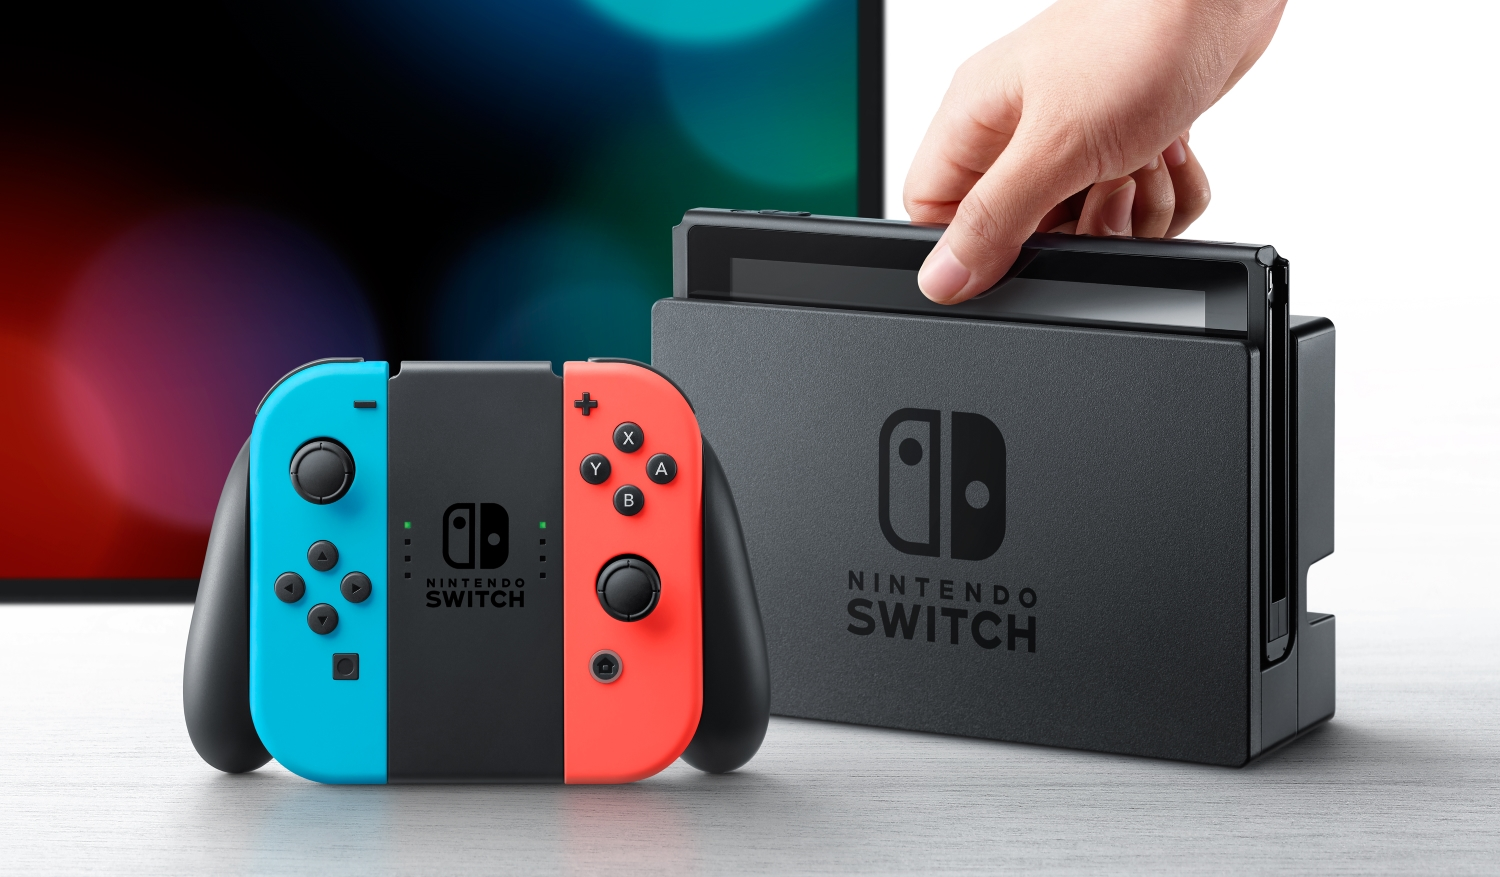 Nintendo Switch - is it worth your while?